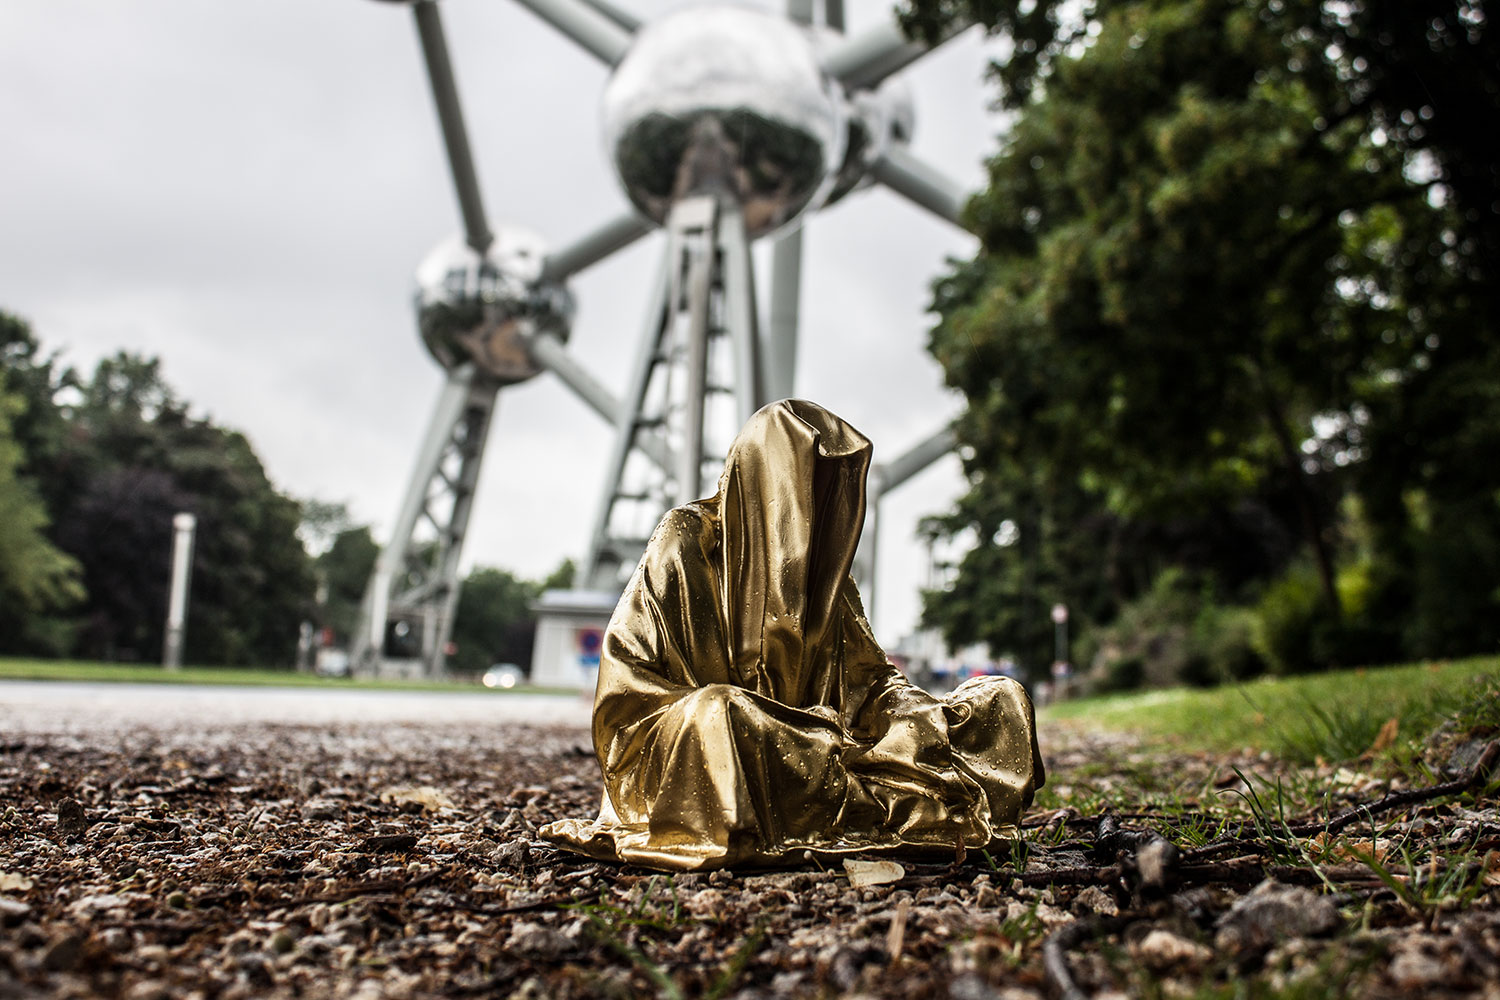 brussel-belgien-atonium-guardians-of-time-manfred-kielnhofer-public-modern-contemporary-art-fine-arts-sculpture-design-streat-art-1900